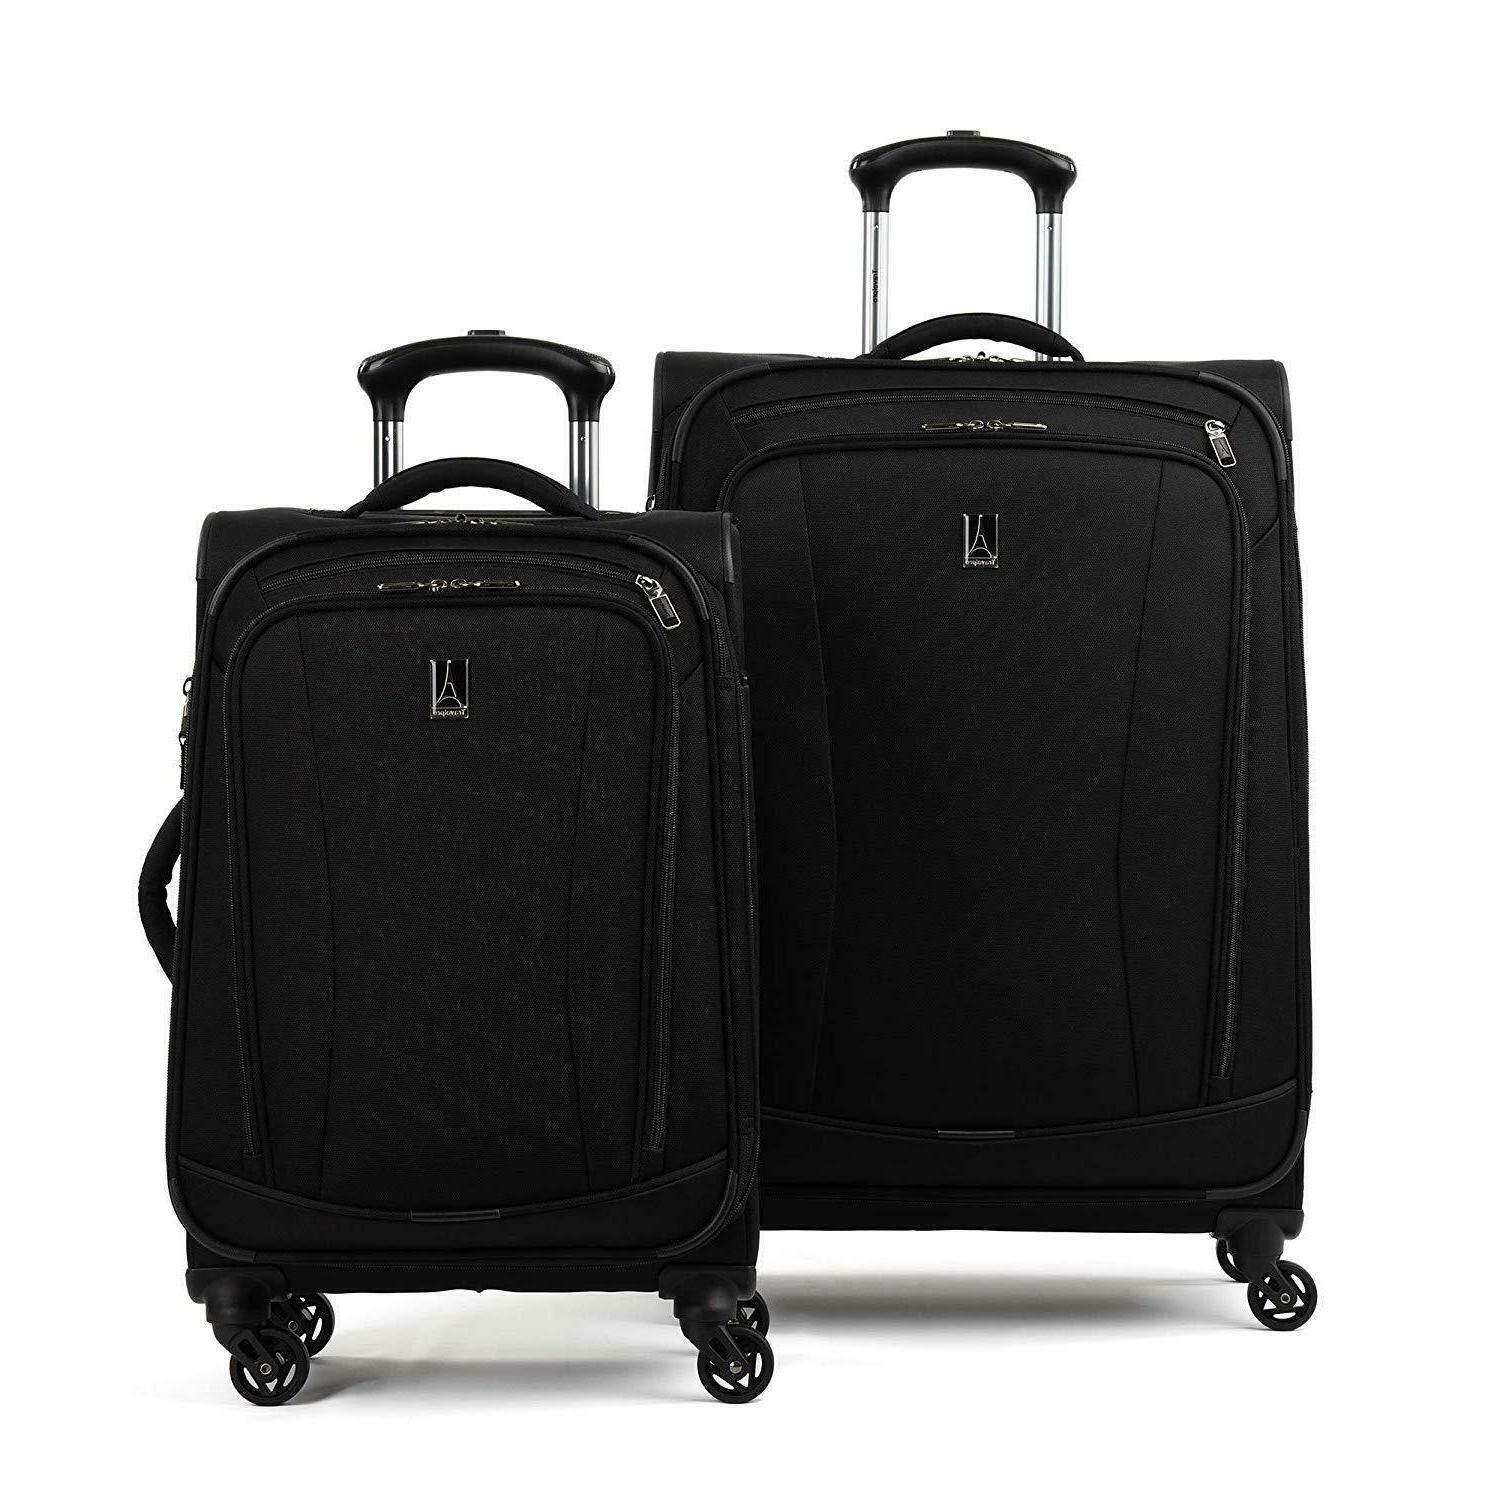 tourgo 20 and 25 softside spinner luggage